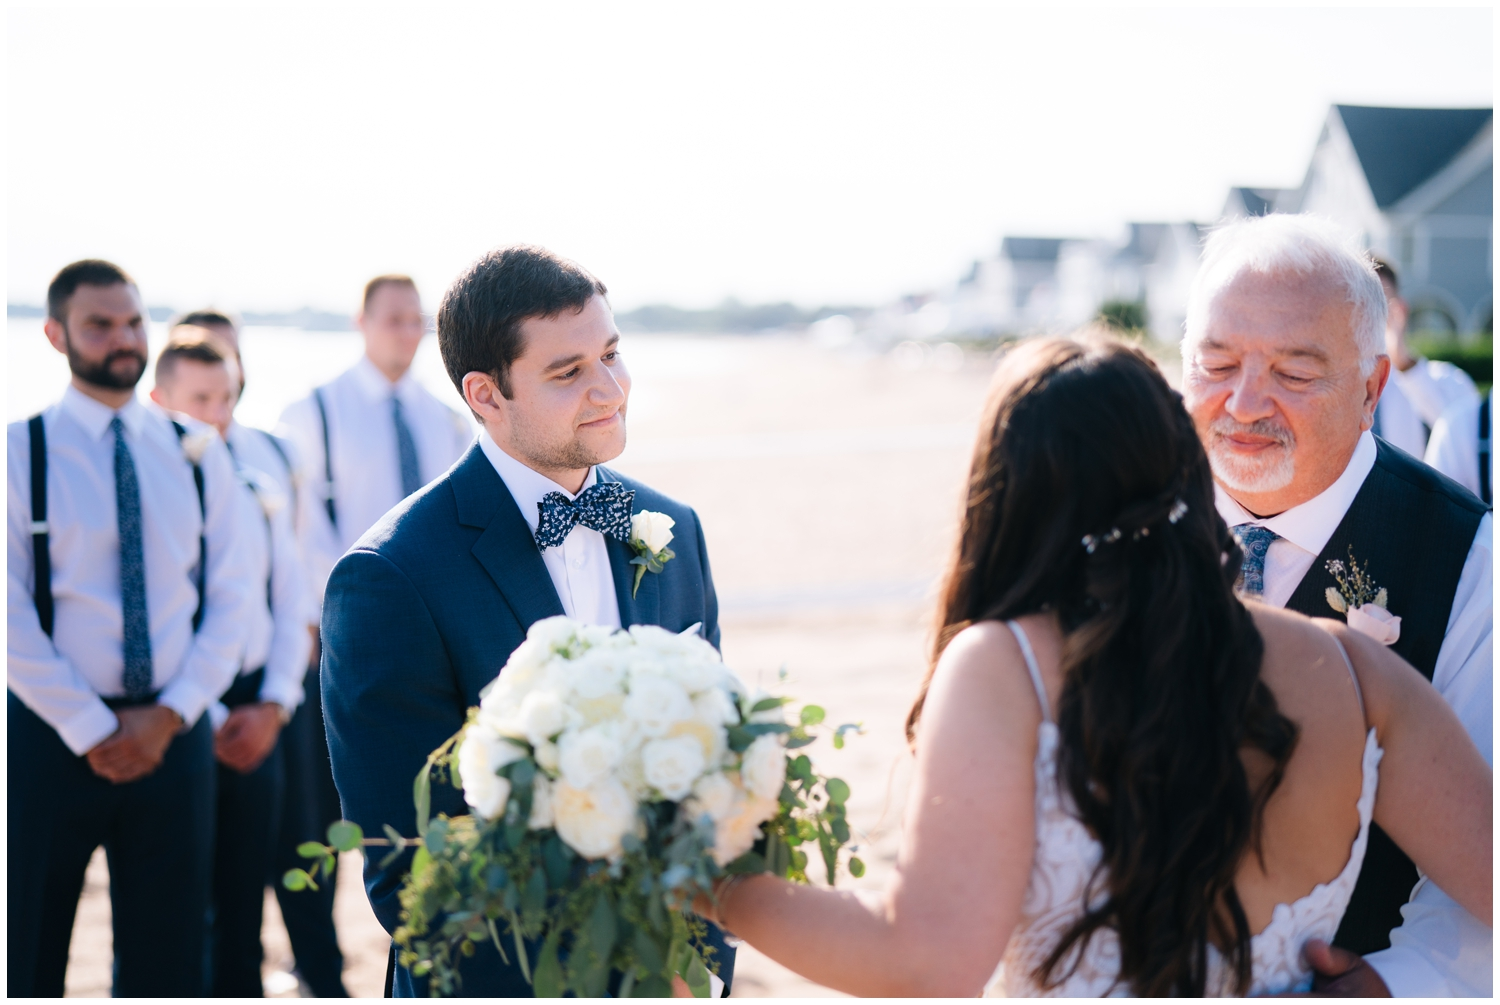 Madison Beach Hotel Wedding - Steven & Jessica_0144.jpg